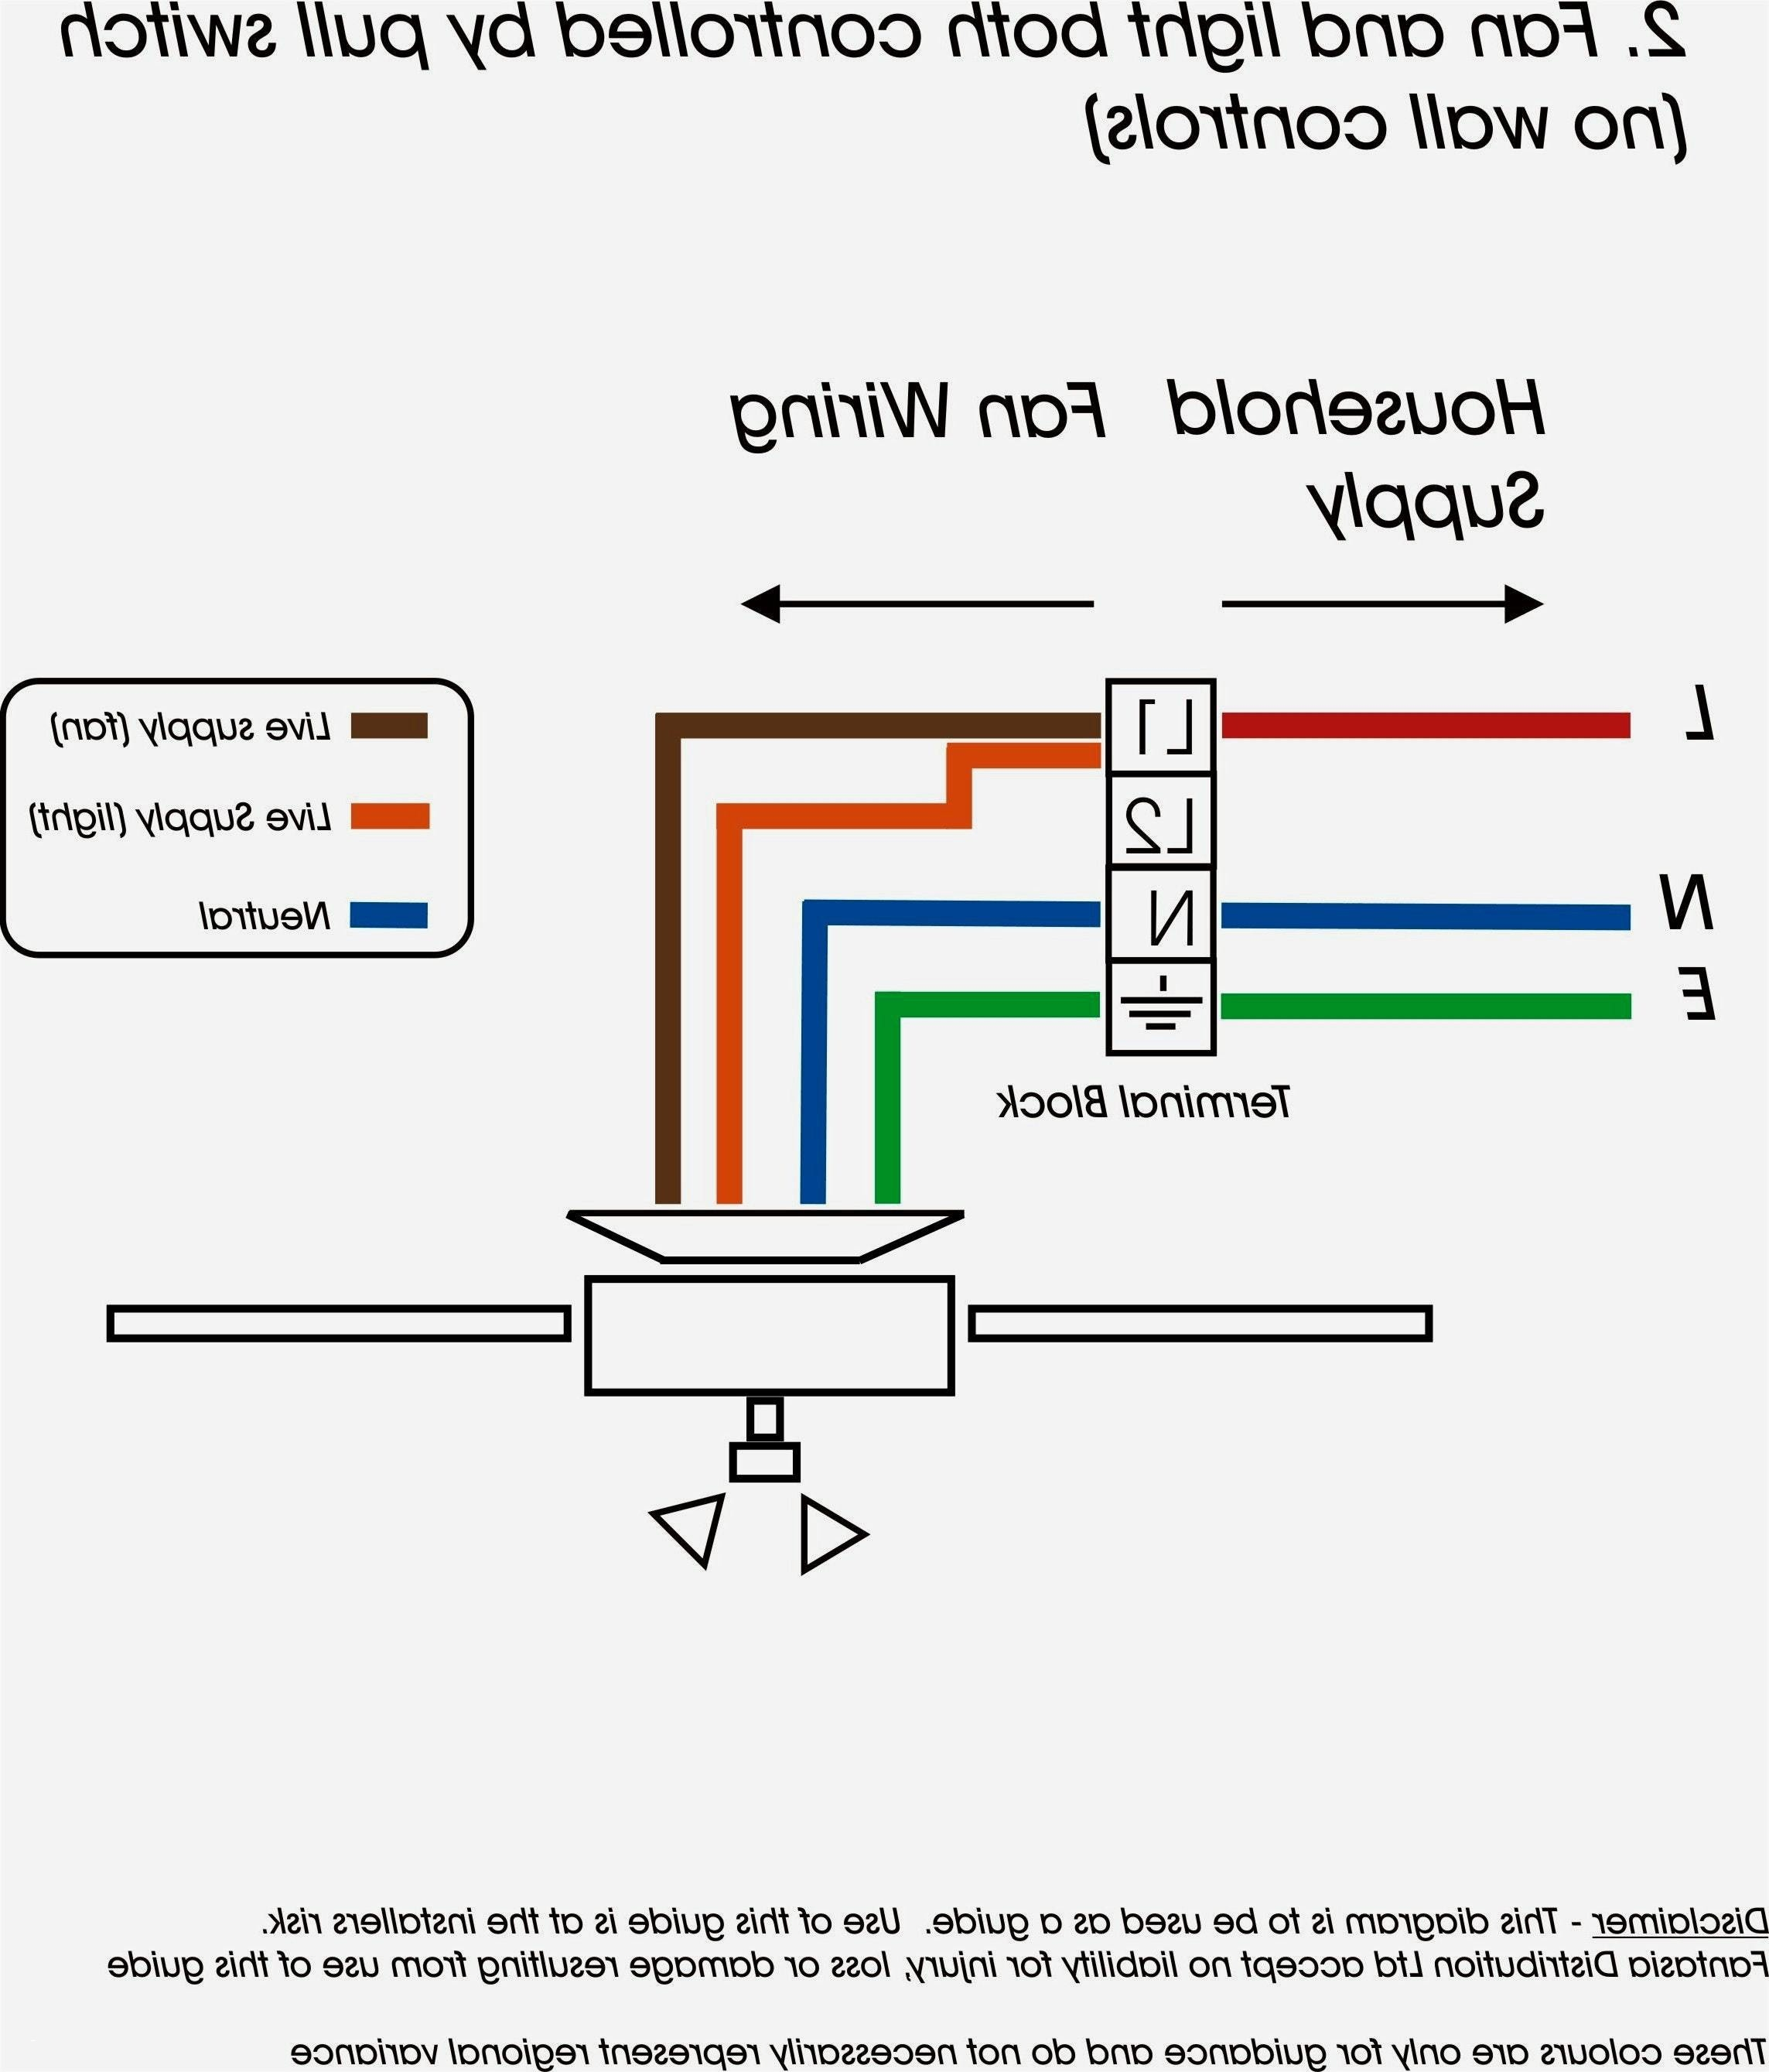 jl audio 500 1v2 wiring diagram Collection-hunter fan wiring diagram Download Ceiling Fan Wire Diagram Inspirational Wiring Diagram Examples Archives L2archive DOWNLOAD Wiring Diagram 10-n